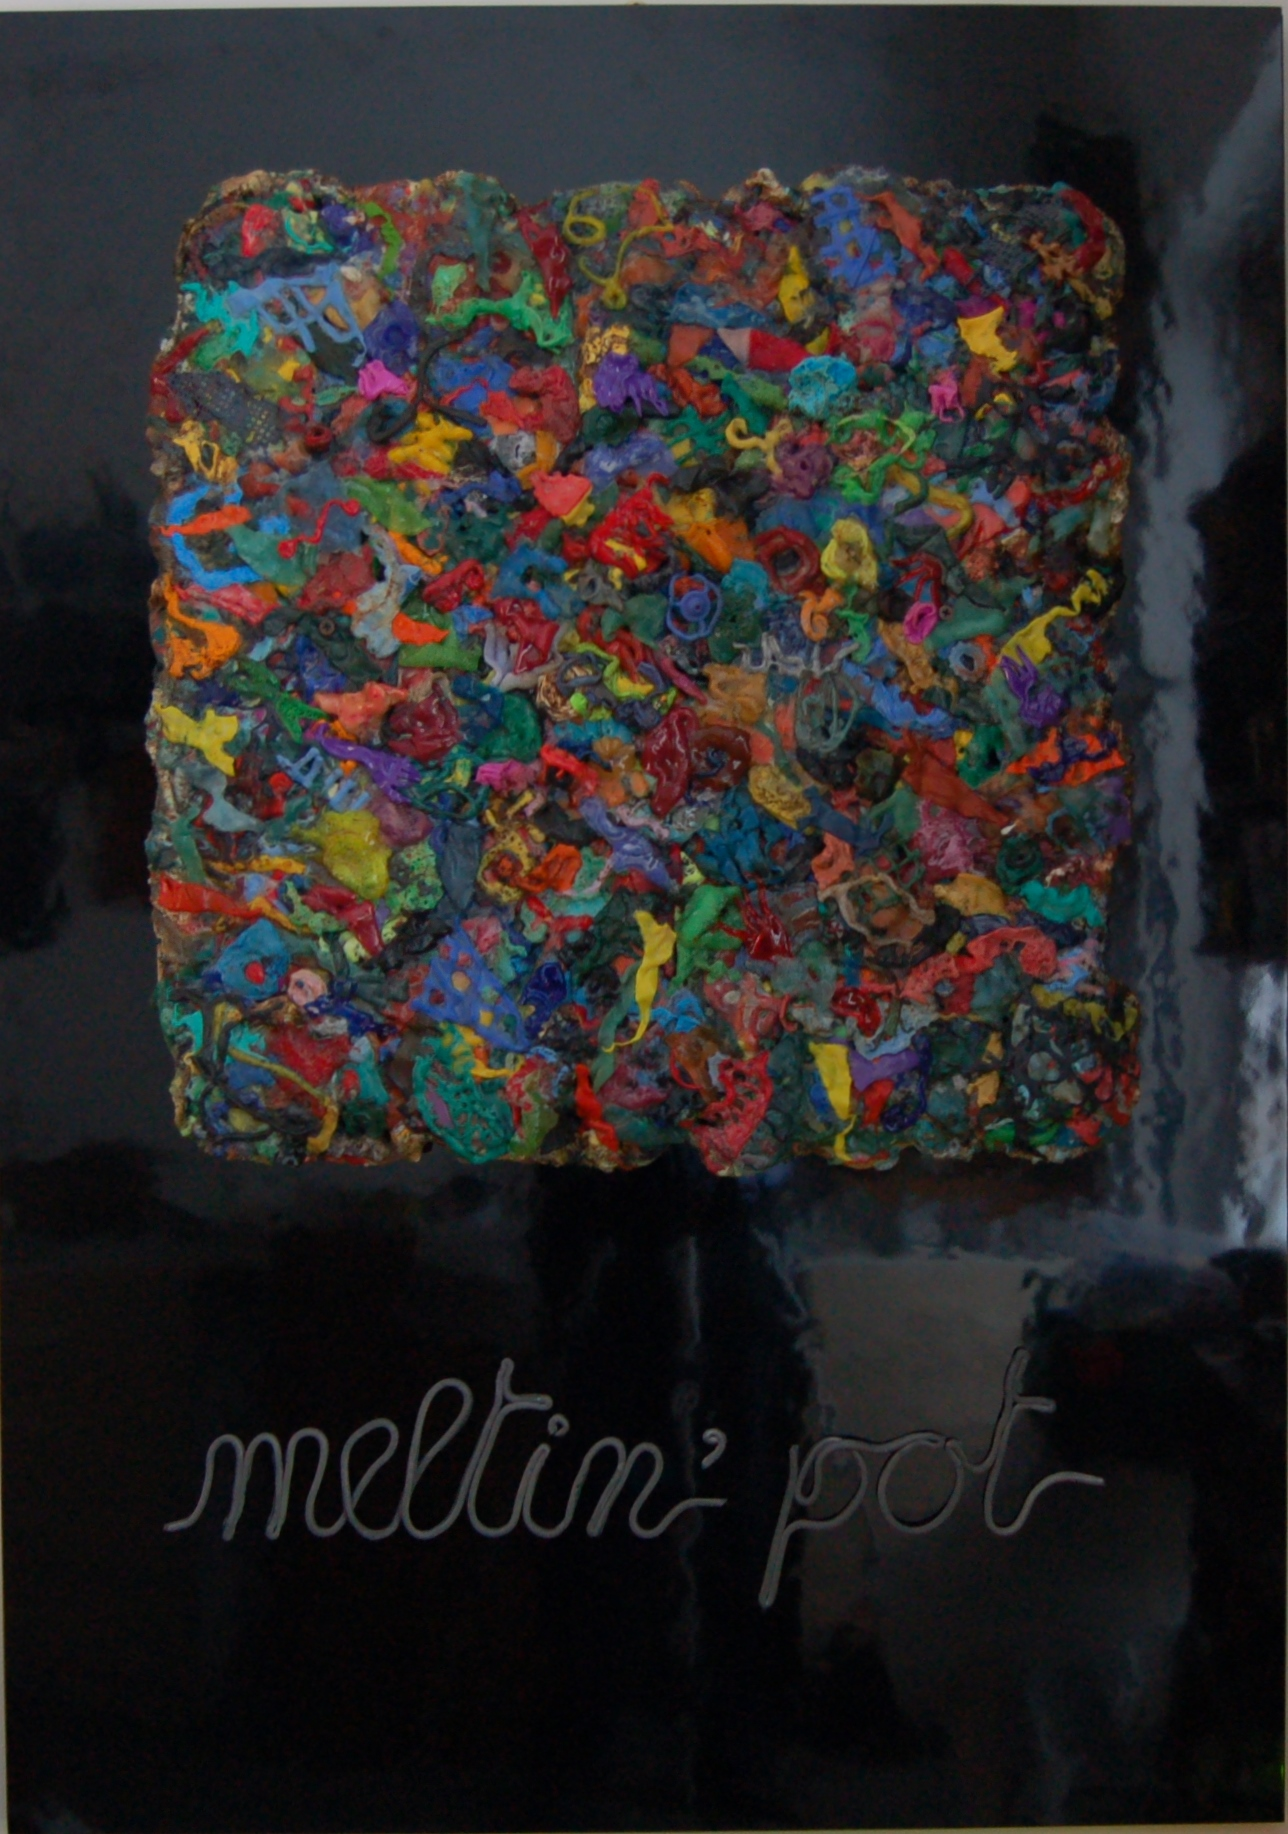 Meltin' pot - 2014